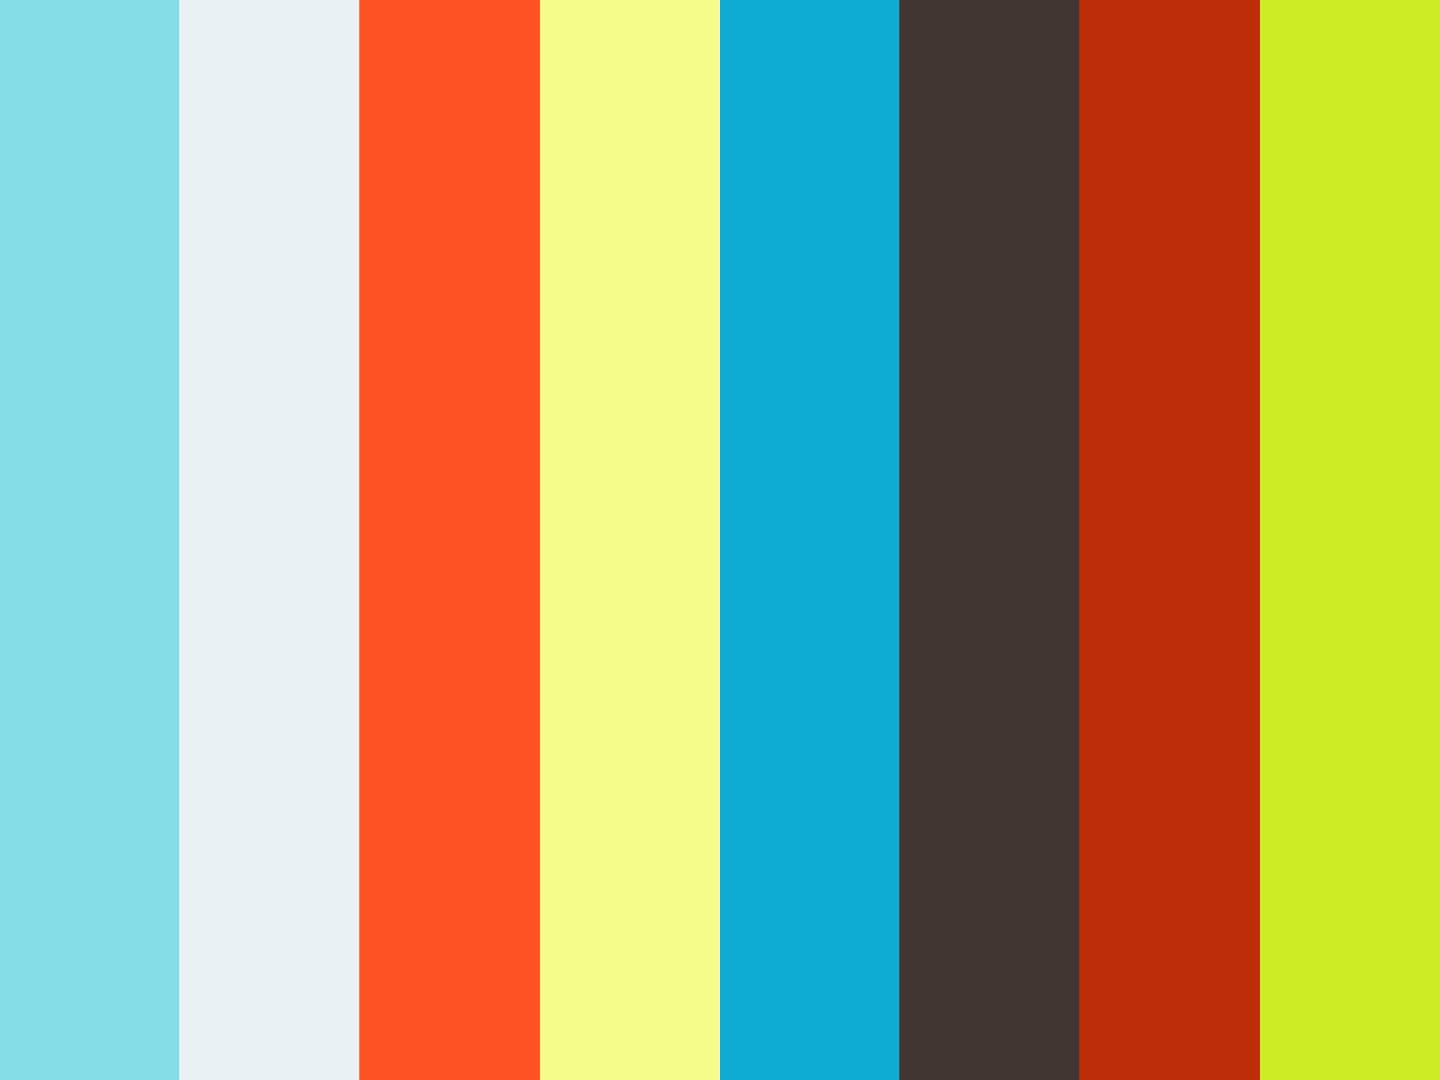 annonce peugeot 5008 allure 7 places hdi 115 on vimeo. Black Bedroom Furniture Sets. Home Design Ideas